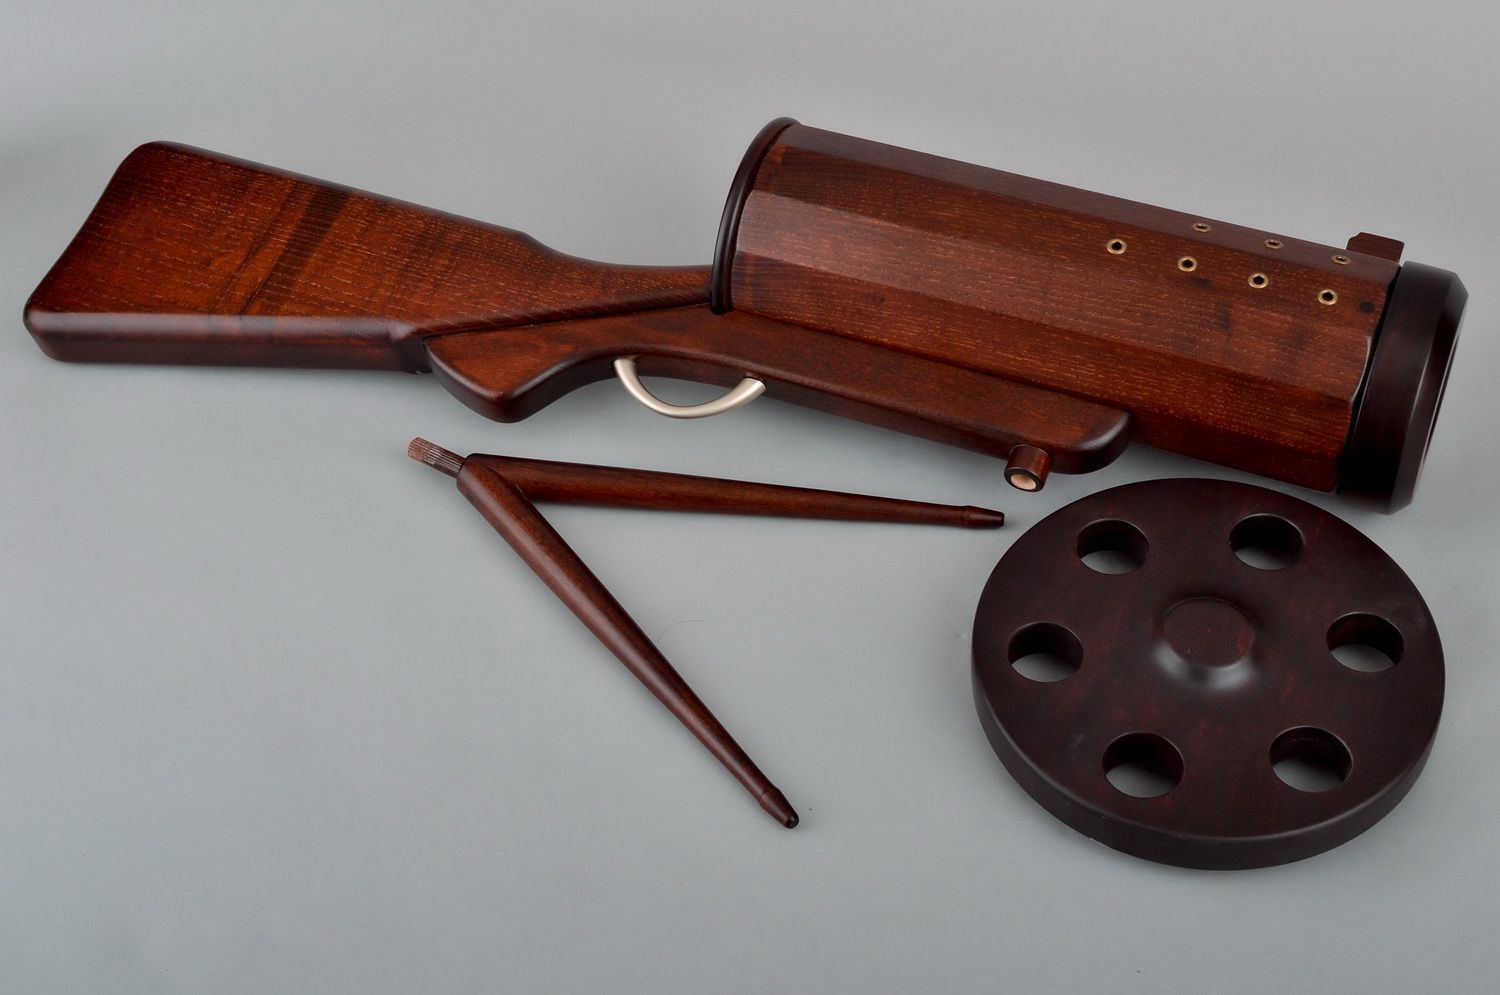 Wooden wine bottle stand in the form of a gun photo 5